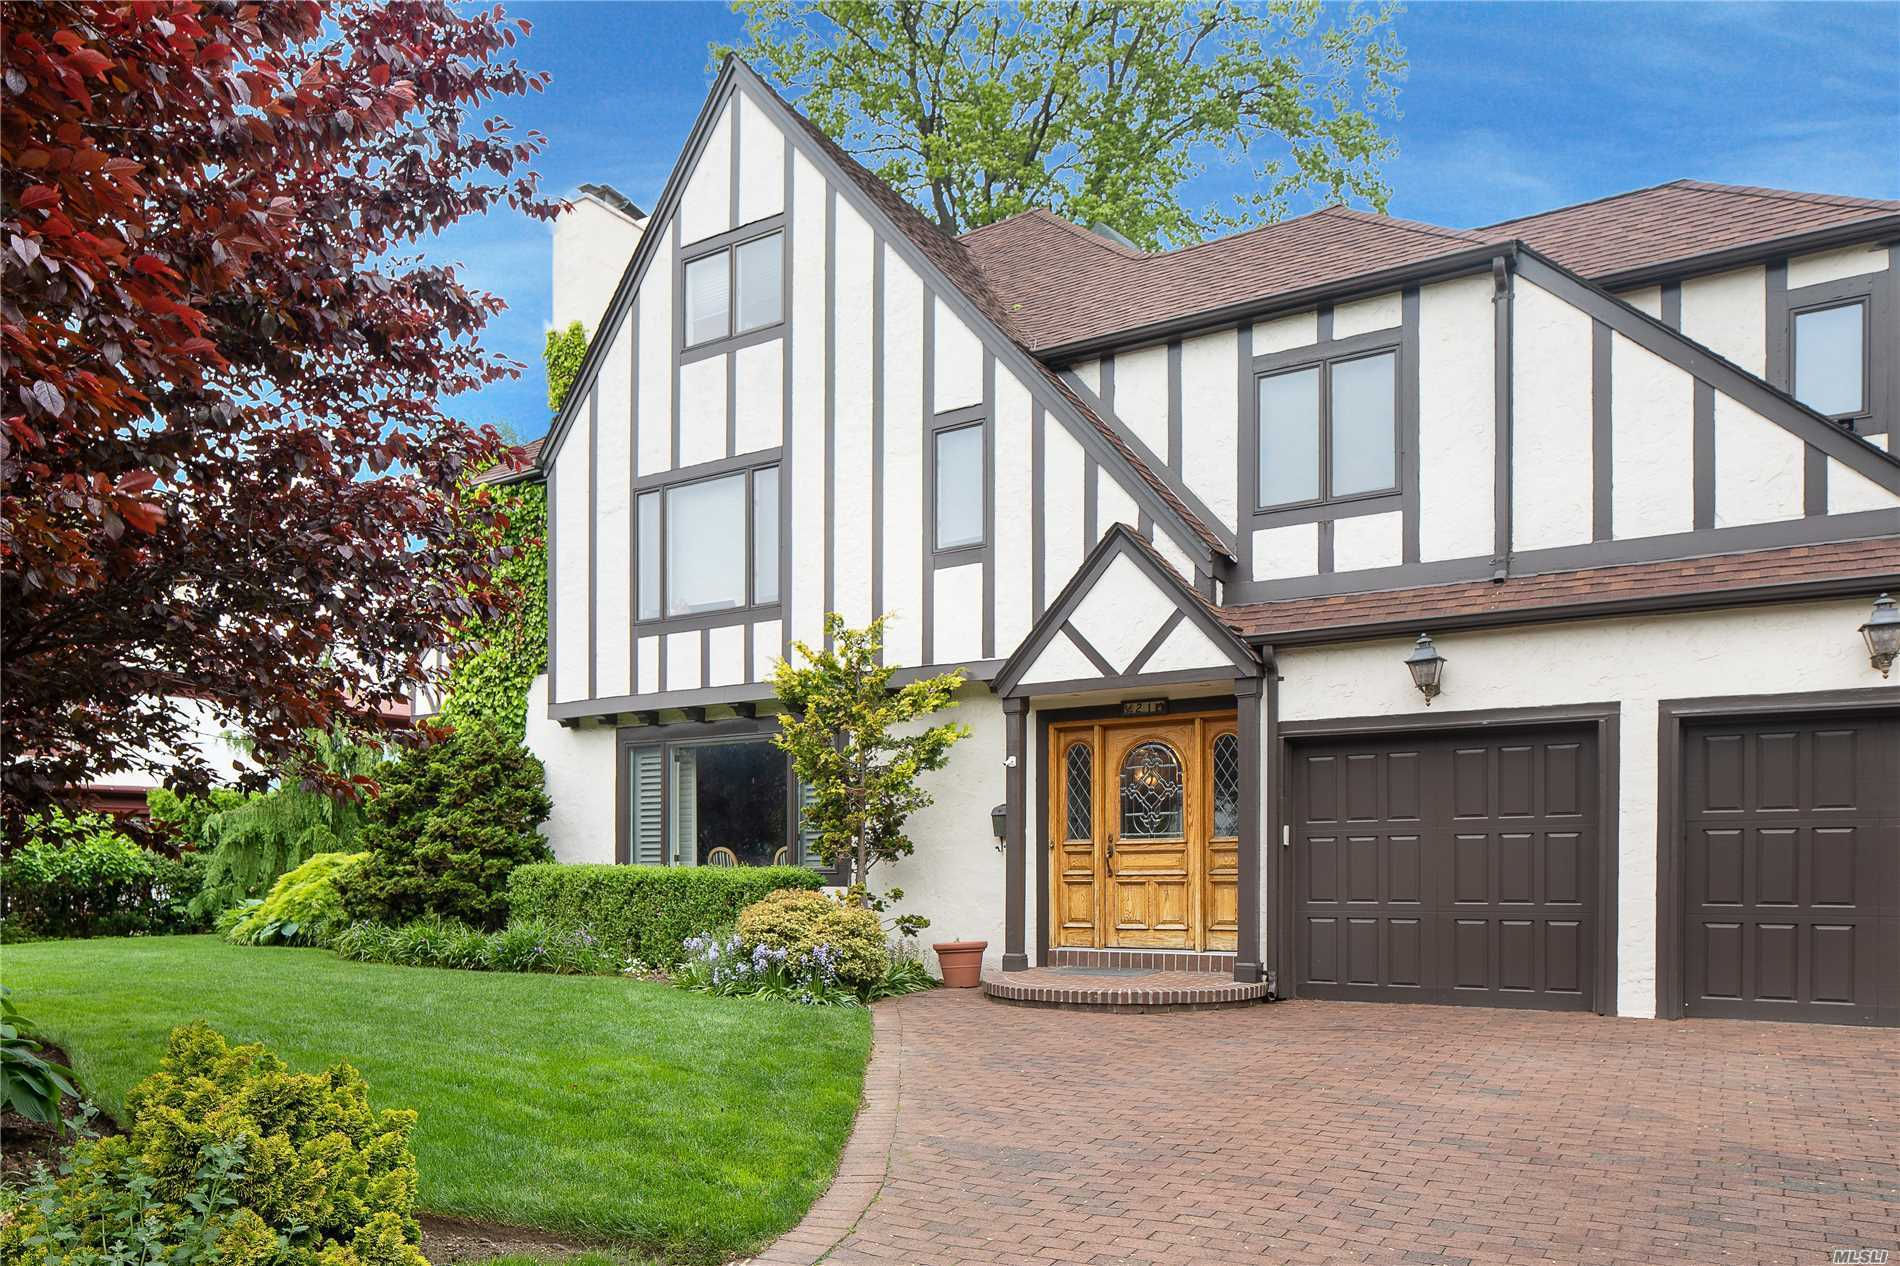 Gracious Tudor Style Home With High Ceilings And Light Filled Rooms. This Home Is Situated On A Quiet Residential Street In The Village Of Kensington With Private Pool And Police, Yet Located A Few Blocks To Playgrounds, Lirr, Shopping And Worship. Meticulously Maintained In Mint Condition With Professionally Landscaped Spectacular Garden. Extremely Low Taxes!